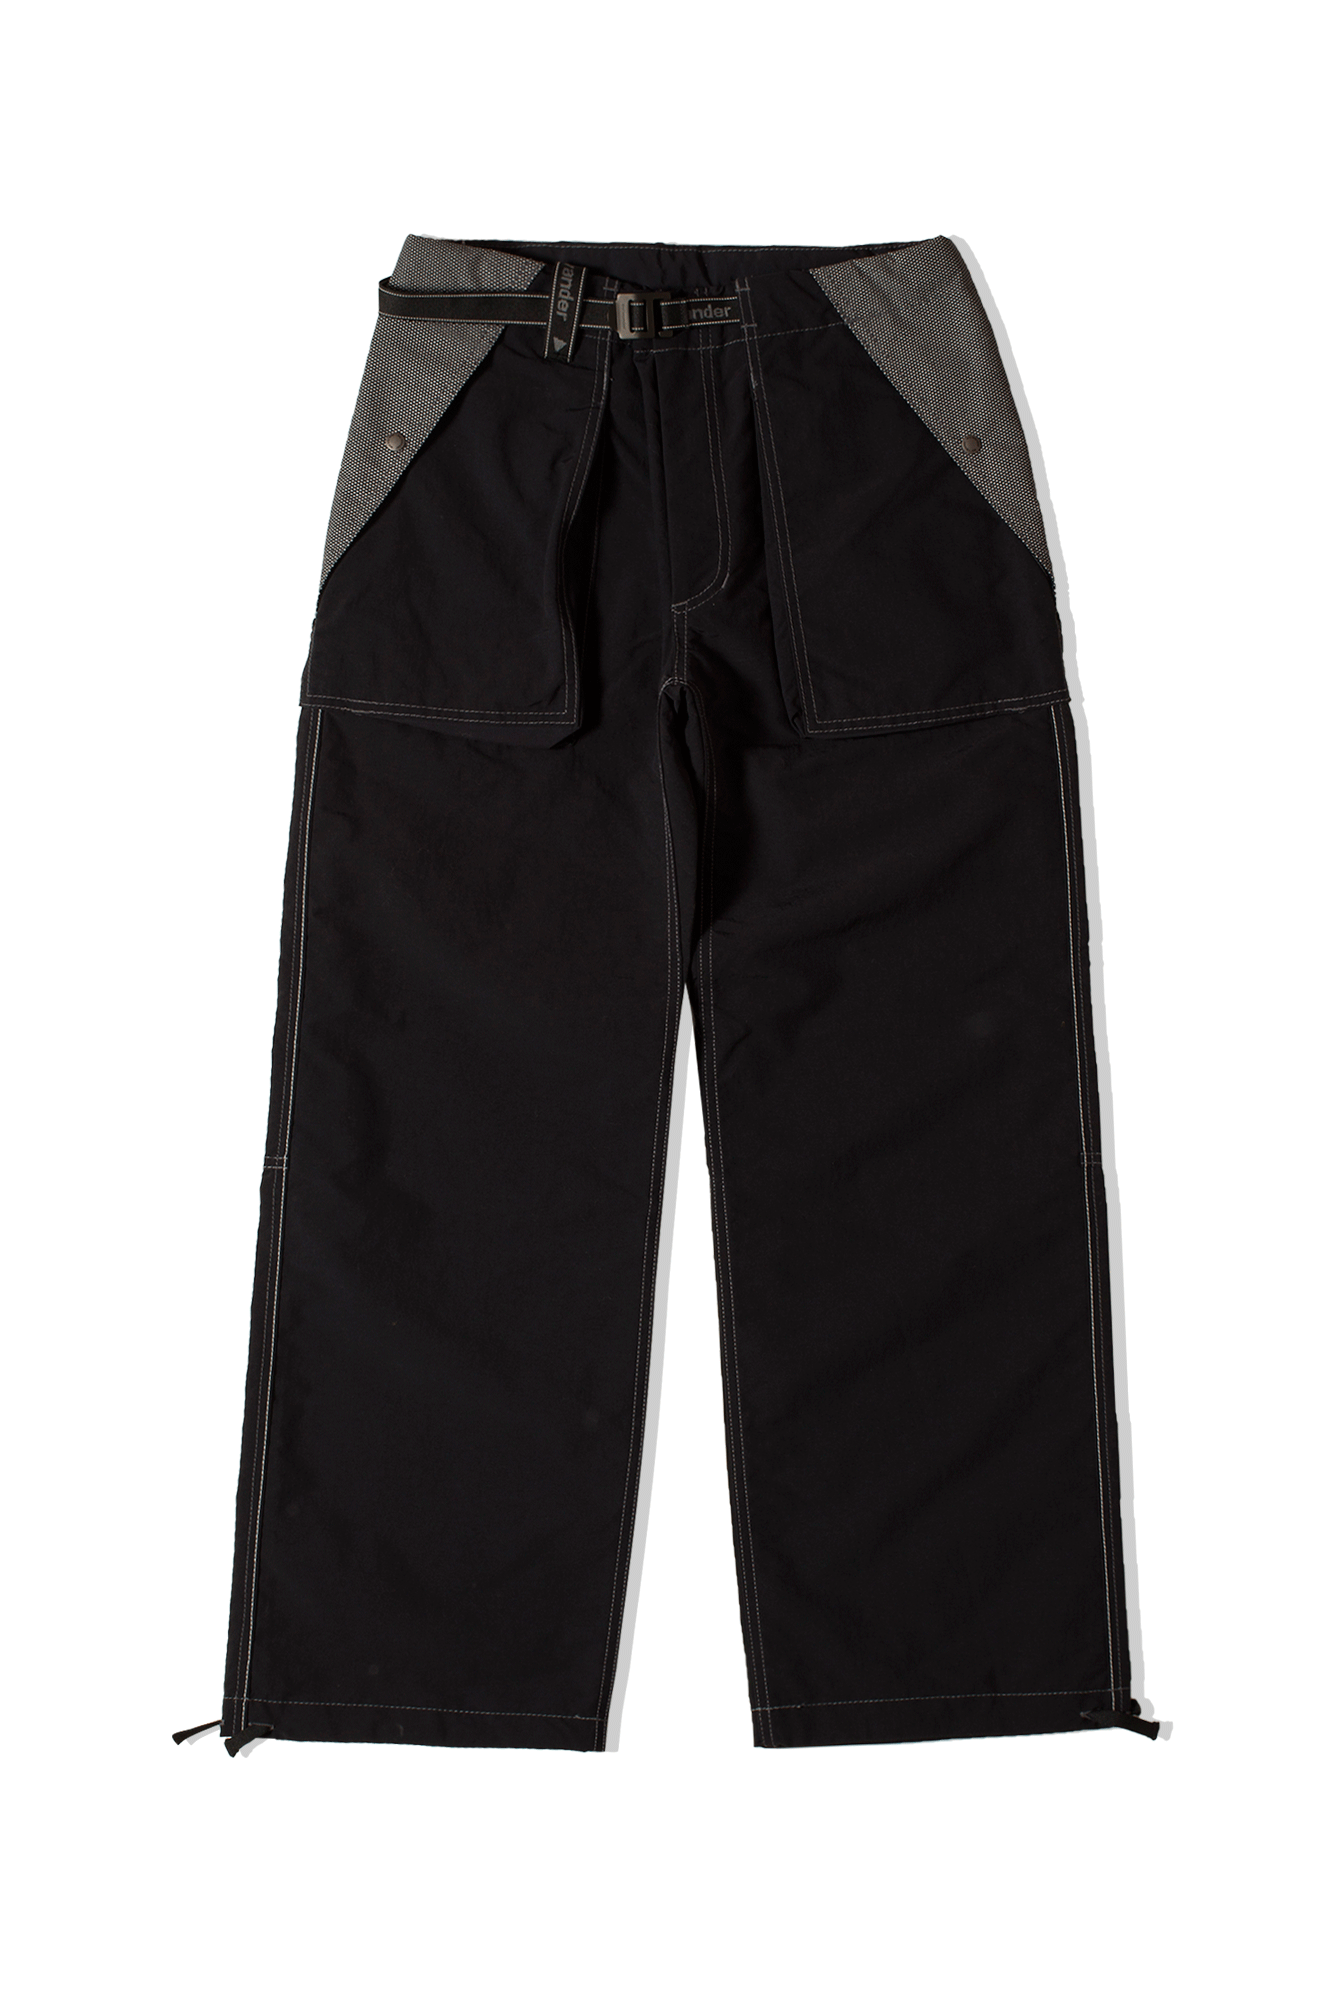 Taslan Nylon Pants Black